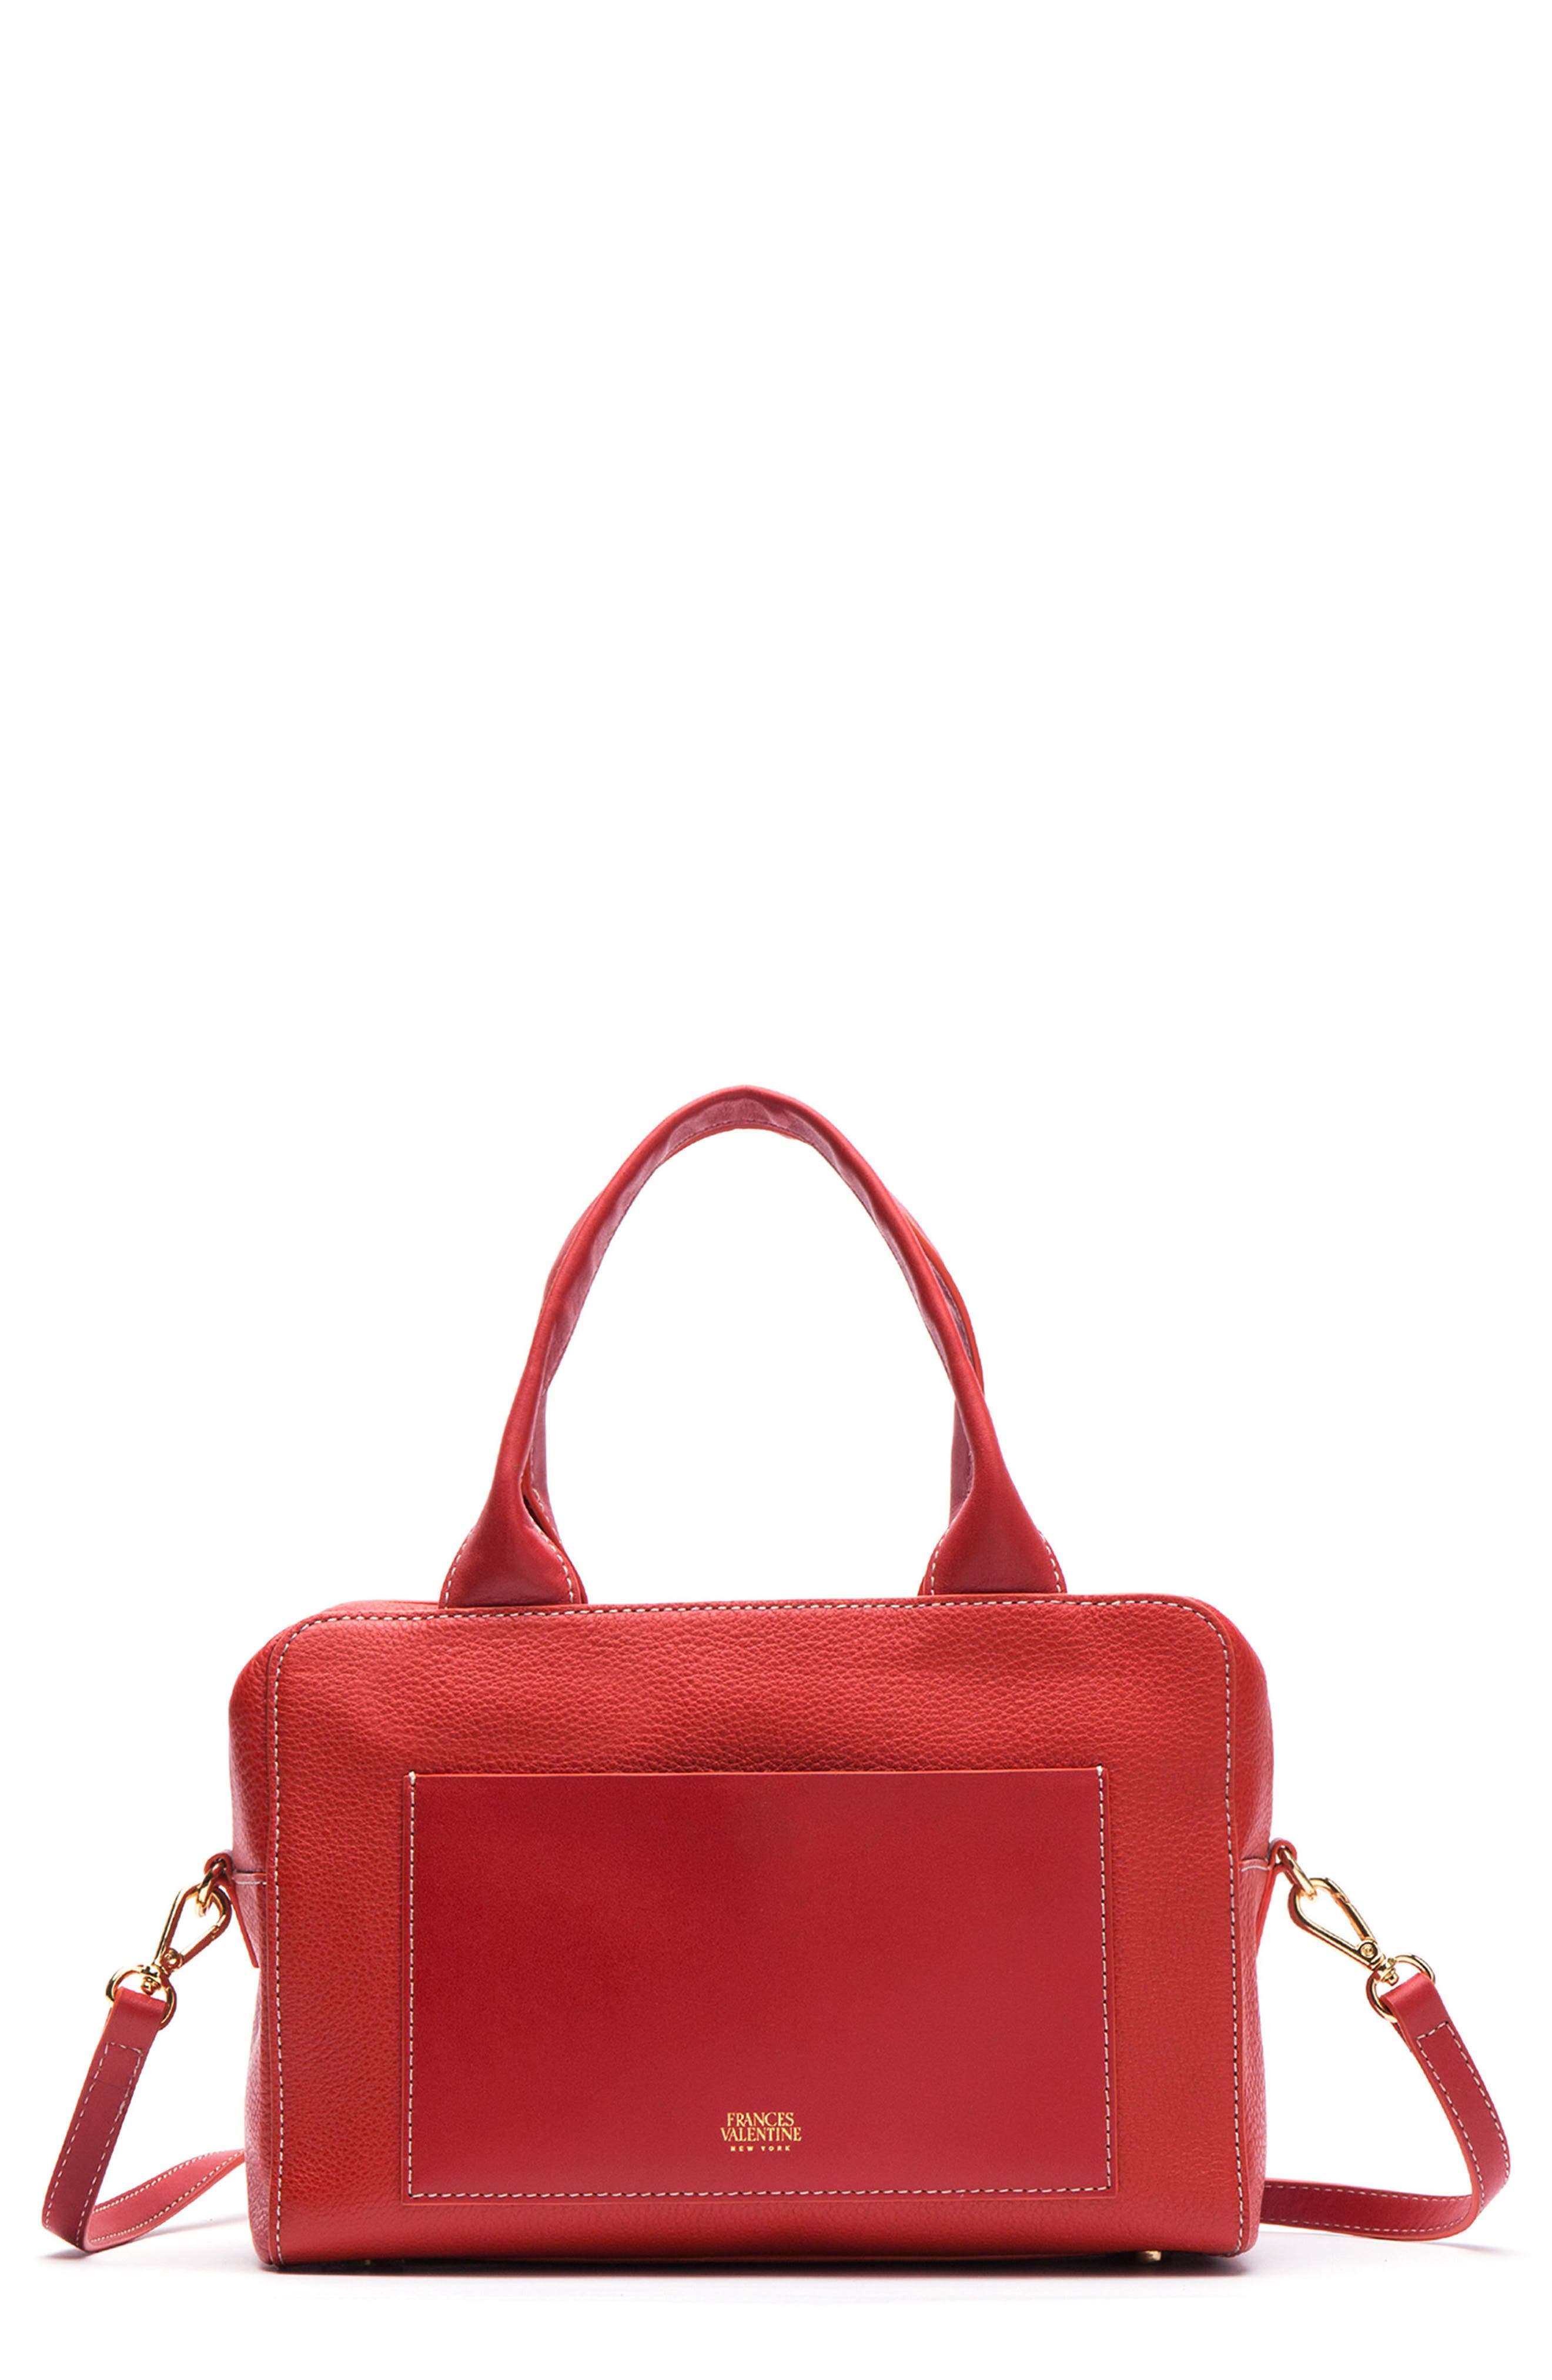 Medium Maddy Satchel,                         Main,                         color, Coral